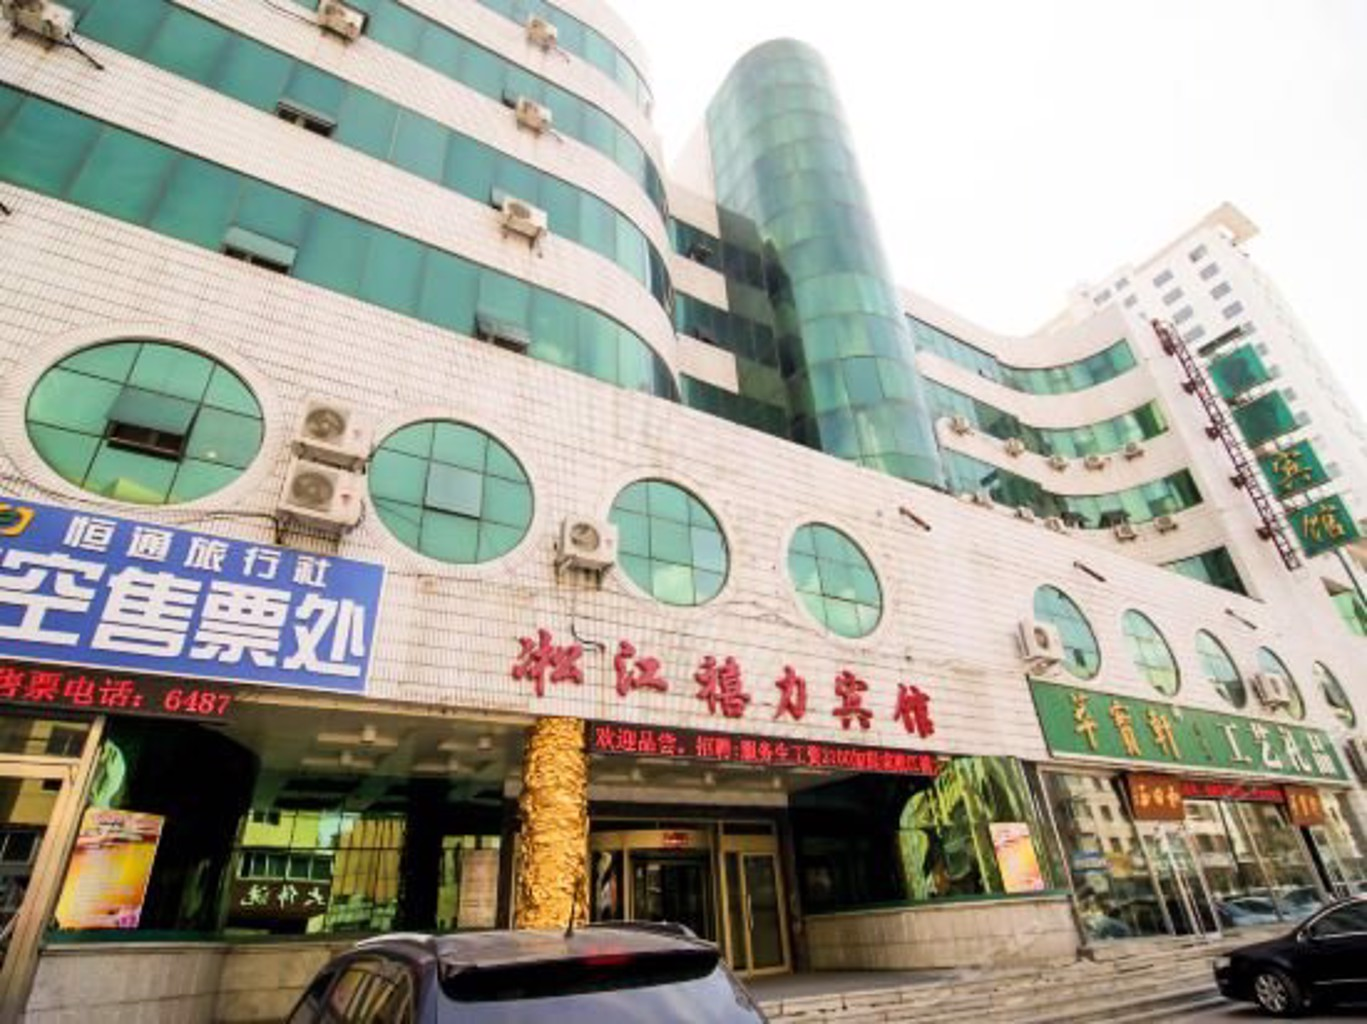 Gallery image of Dianli Hotel